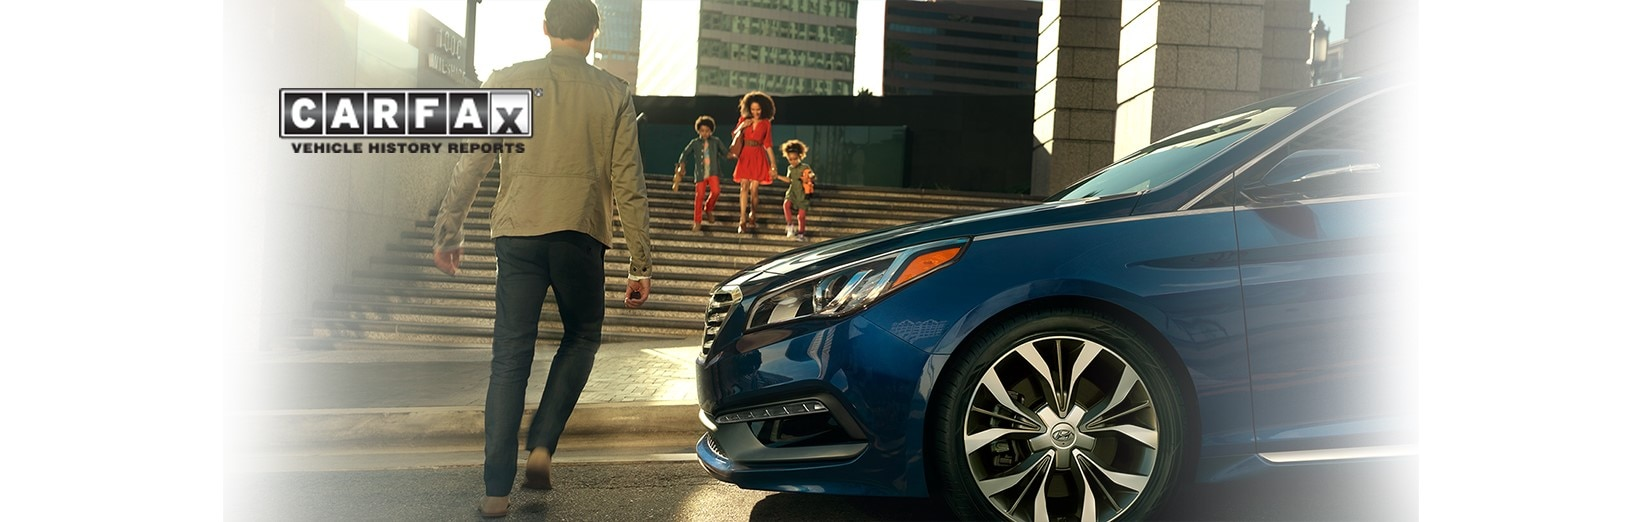 hyundai-certified-pre-owned-carfax-report